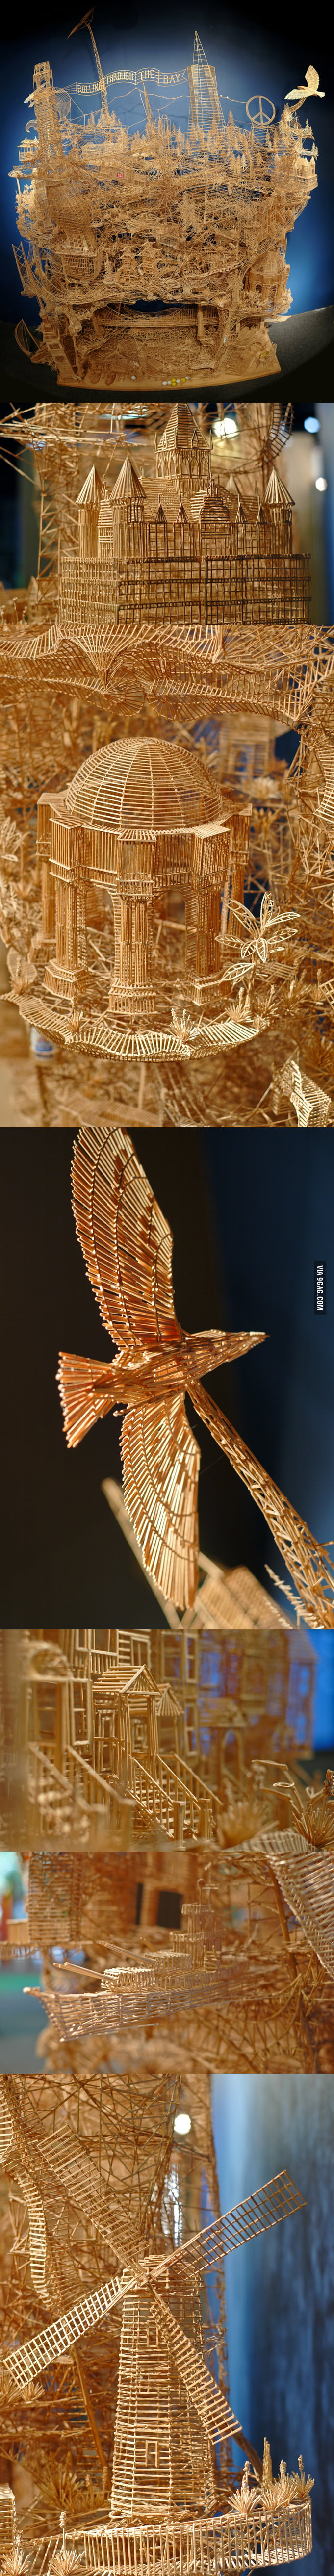 One man, 100,000 toothpicks, and 35 years.